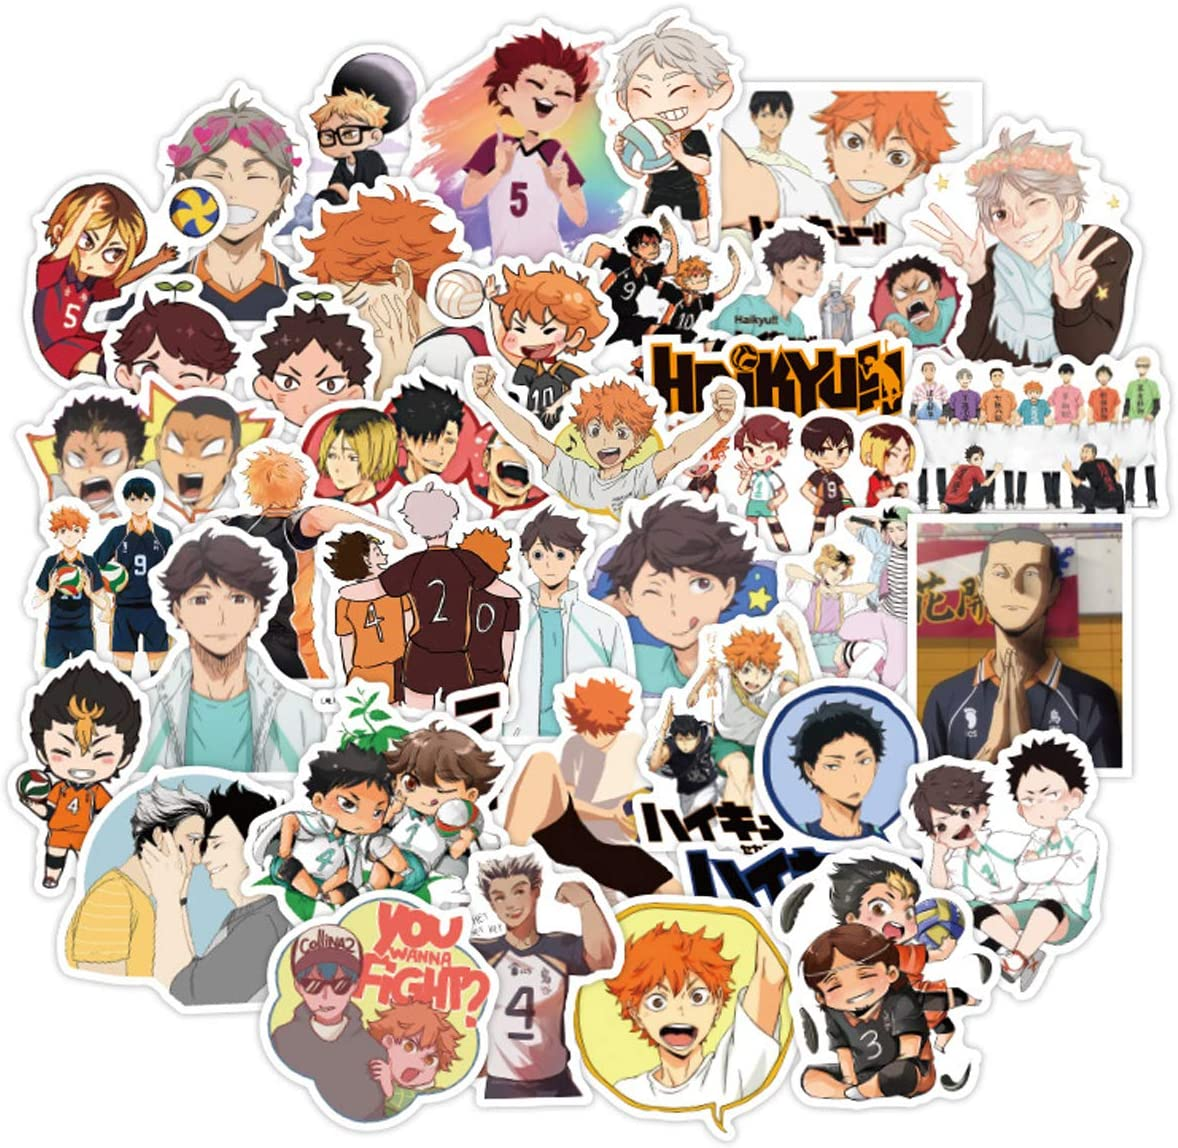 Haikyuu Stickers 100pcs Waterproof Vinyl Stickers for Laptop Luggage Water Bottle Door Desk Chair Motorcycle Trendy Luggage Decals Graffiti Patches Decoration Gifts Skateboard Stickers for Boys Teens Anime Fans